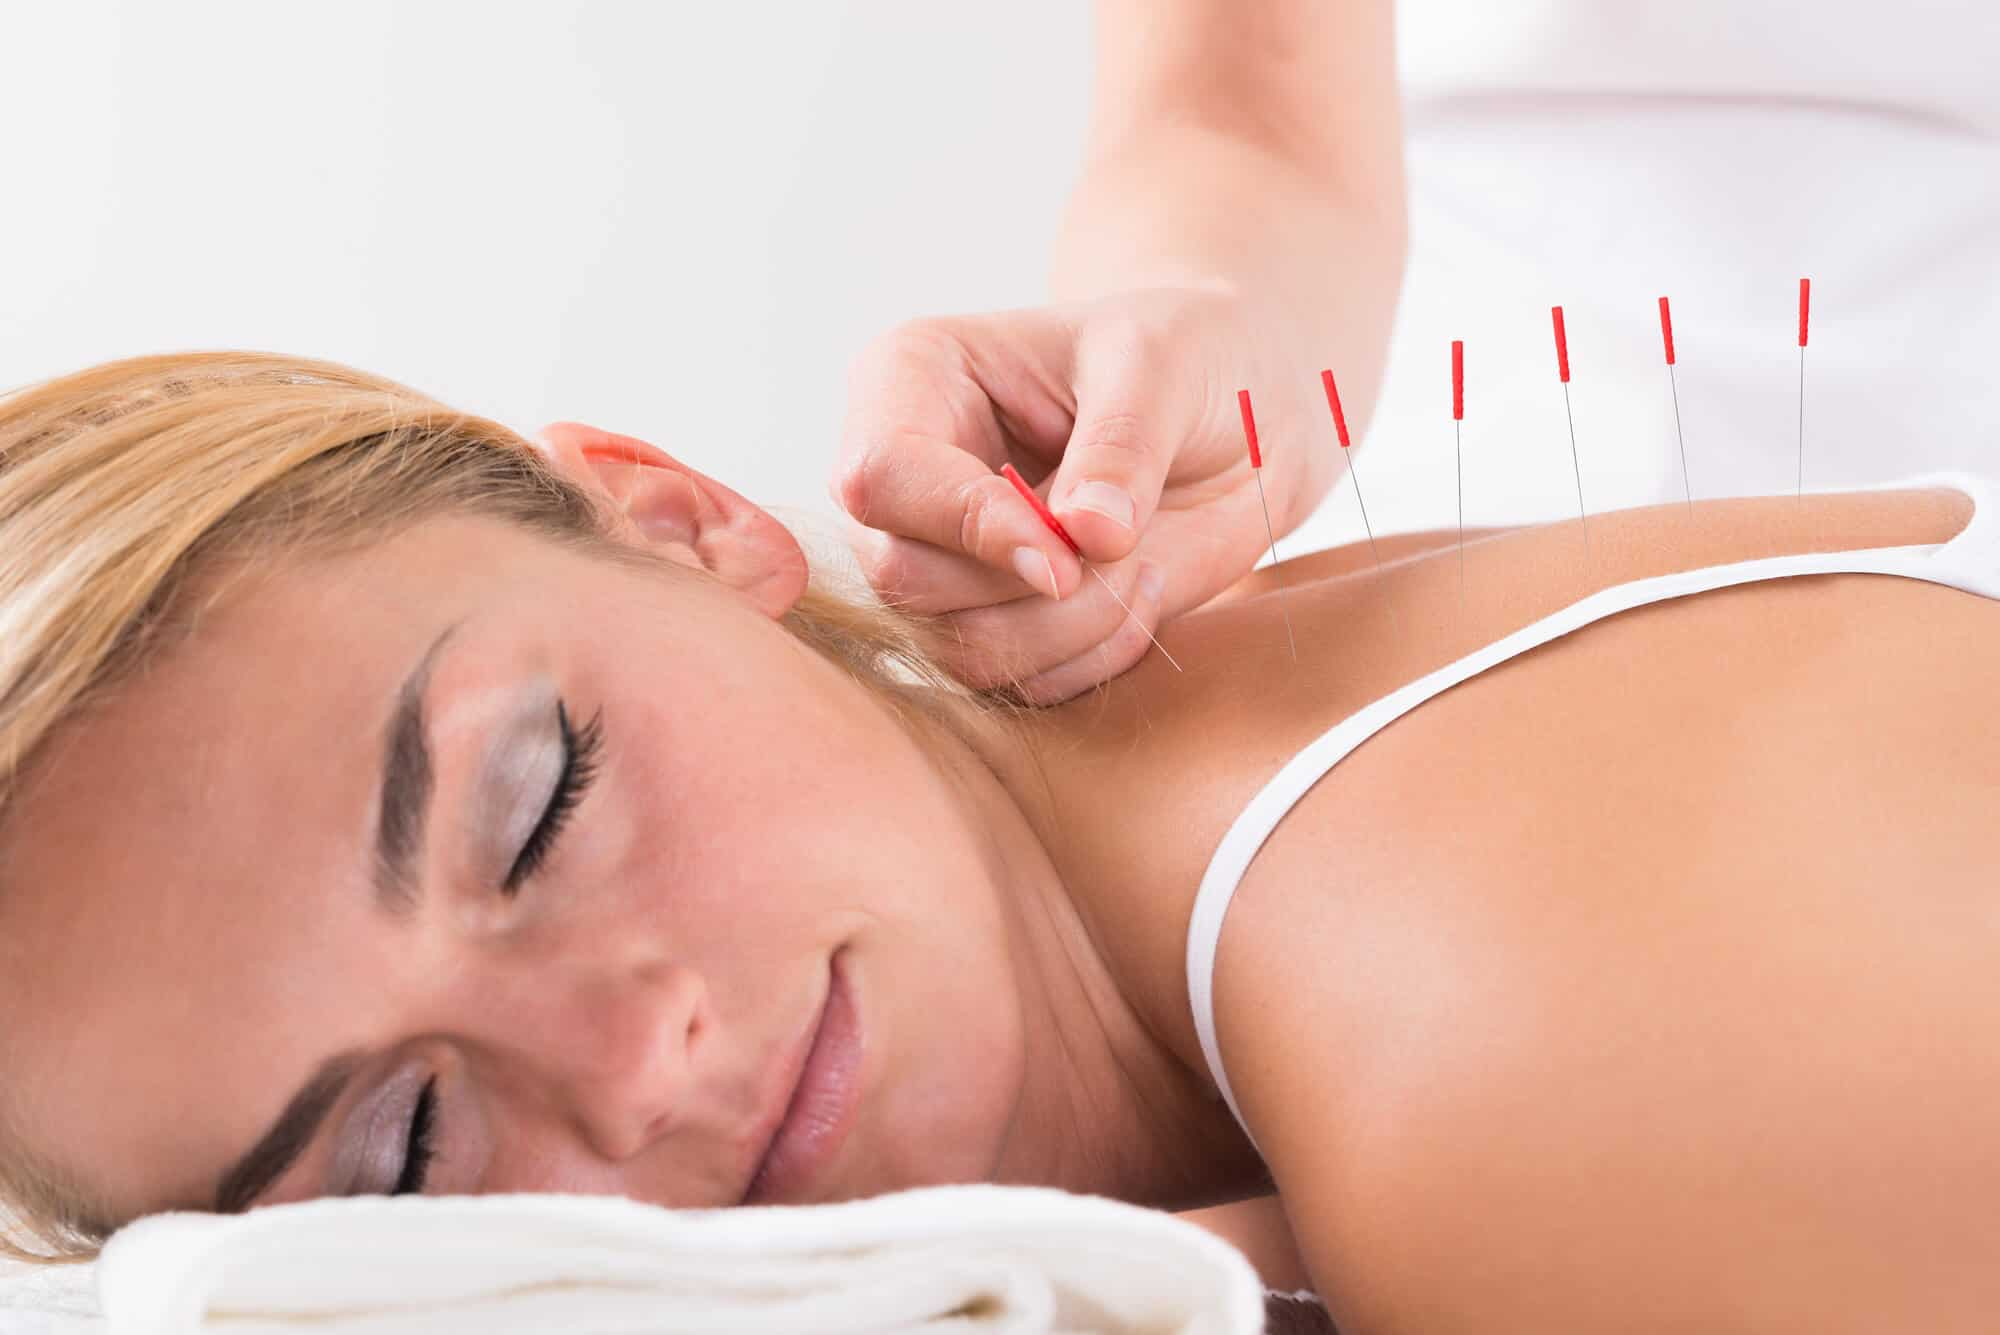 Hand Performing Acupuncture Therapy On Customer's Back